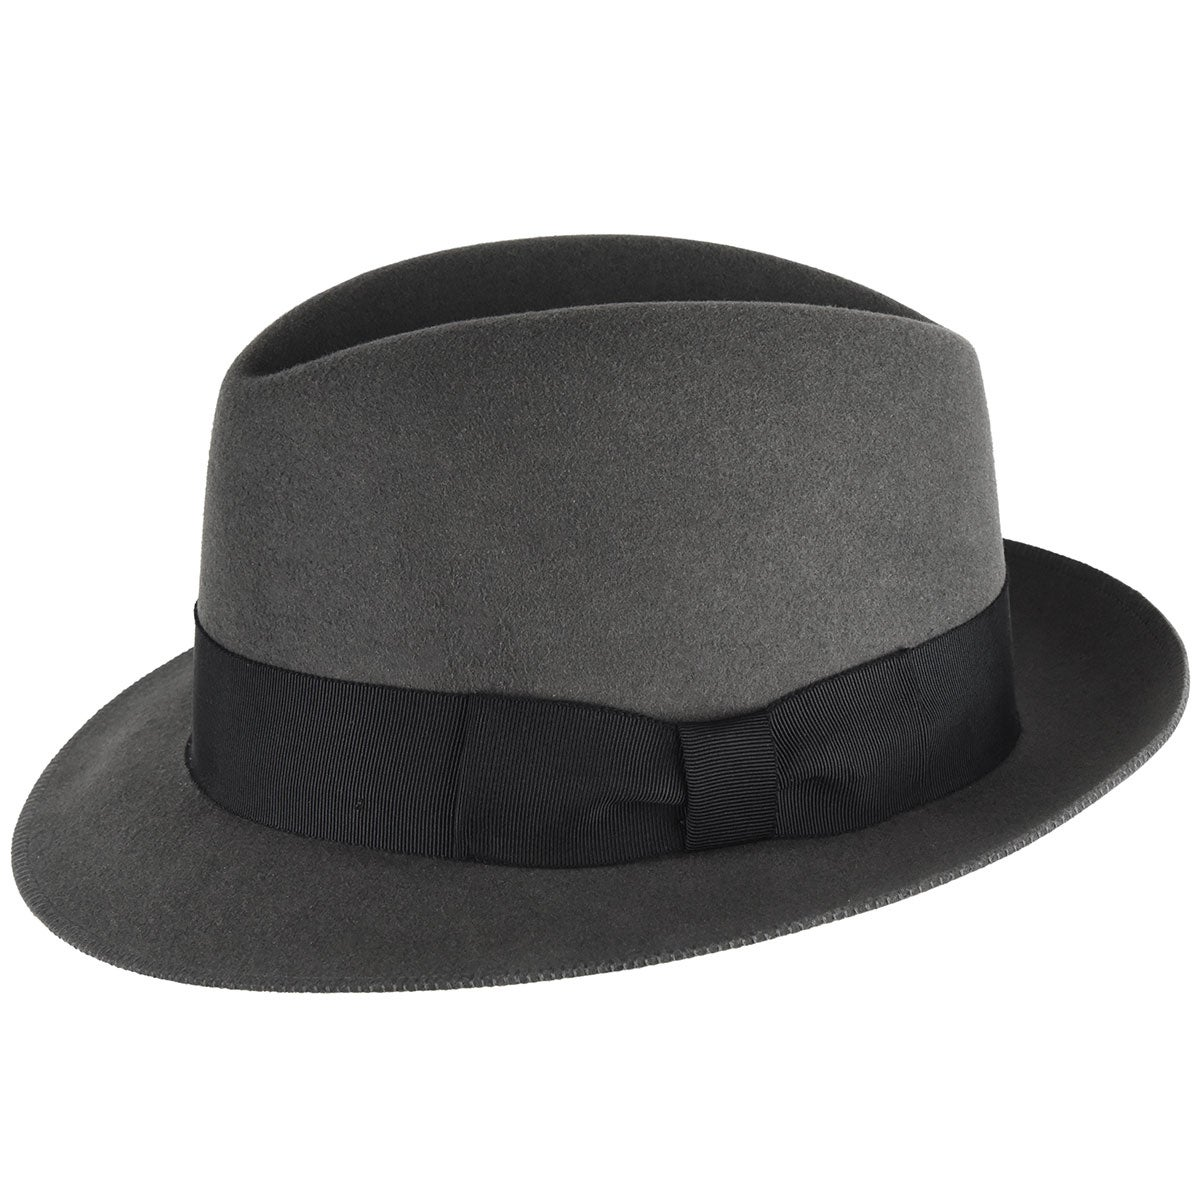 1940s Mens Hats | Fedora, Homburg, Pork Pie Hats 1930s Bollman Collection Trilby $100.00 AT vintagedancer.com